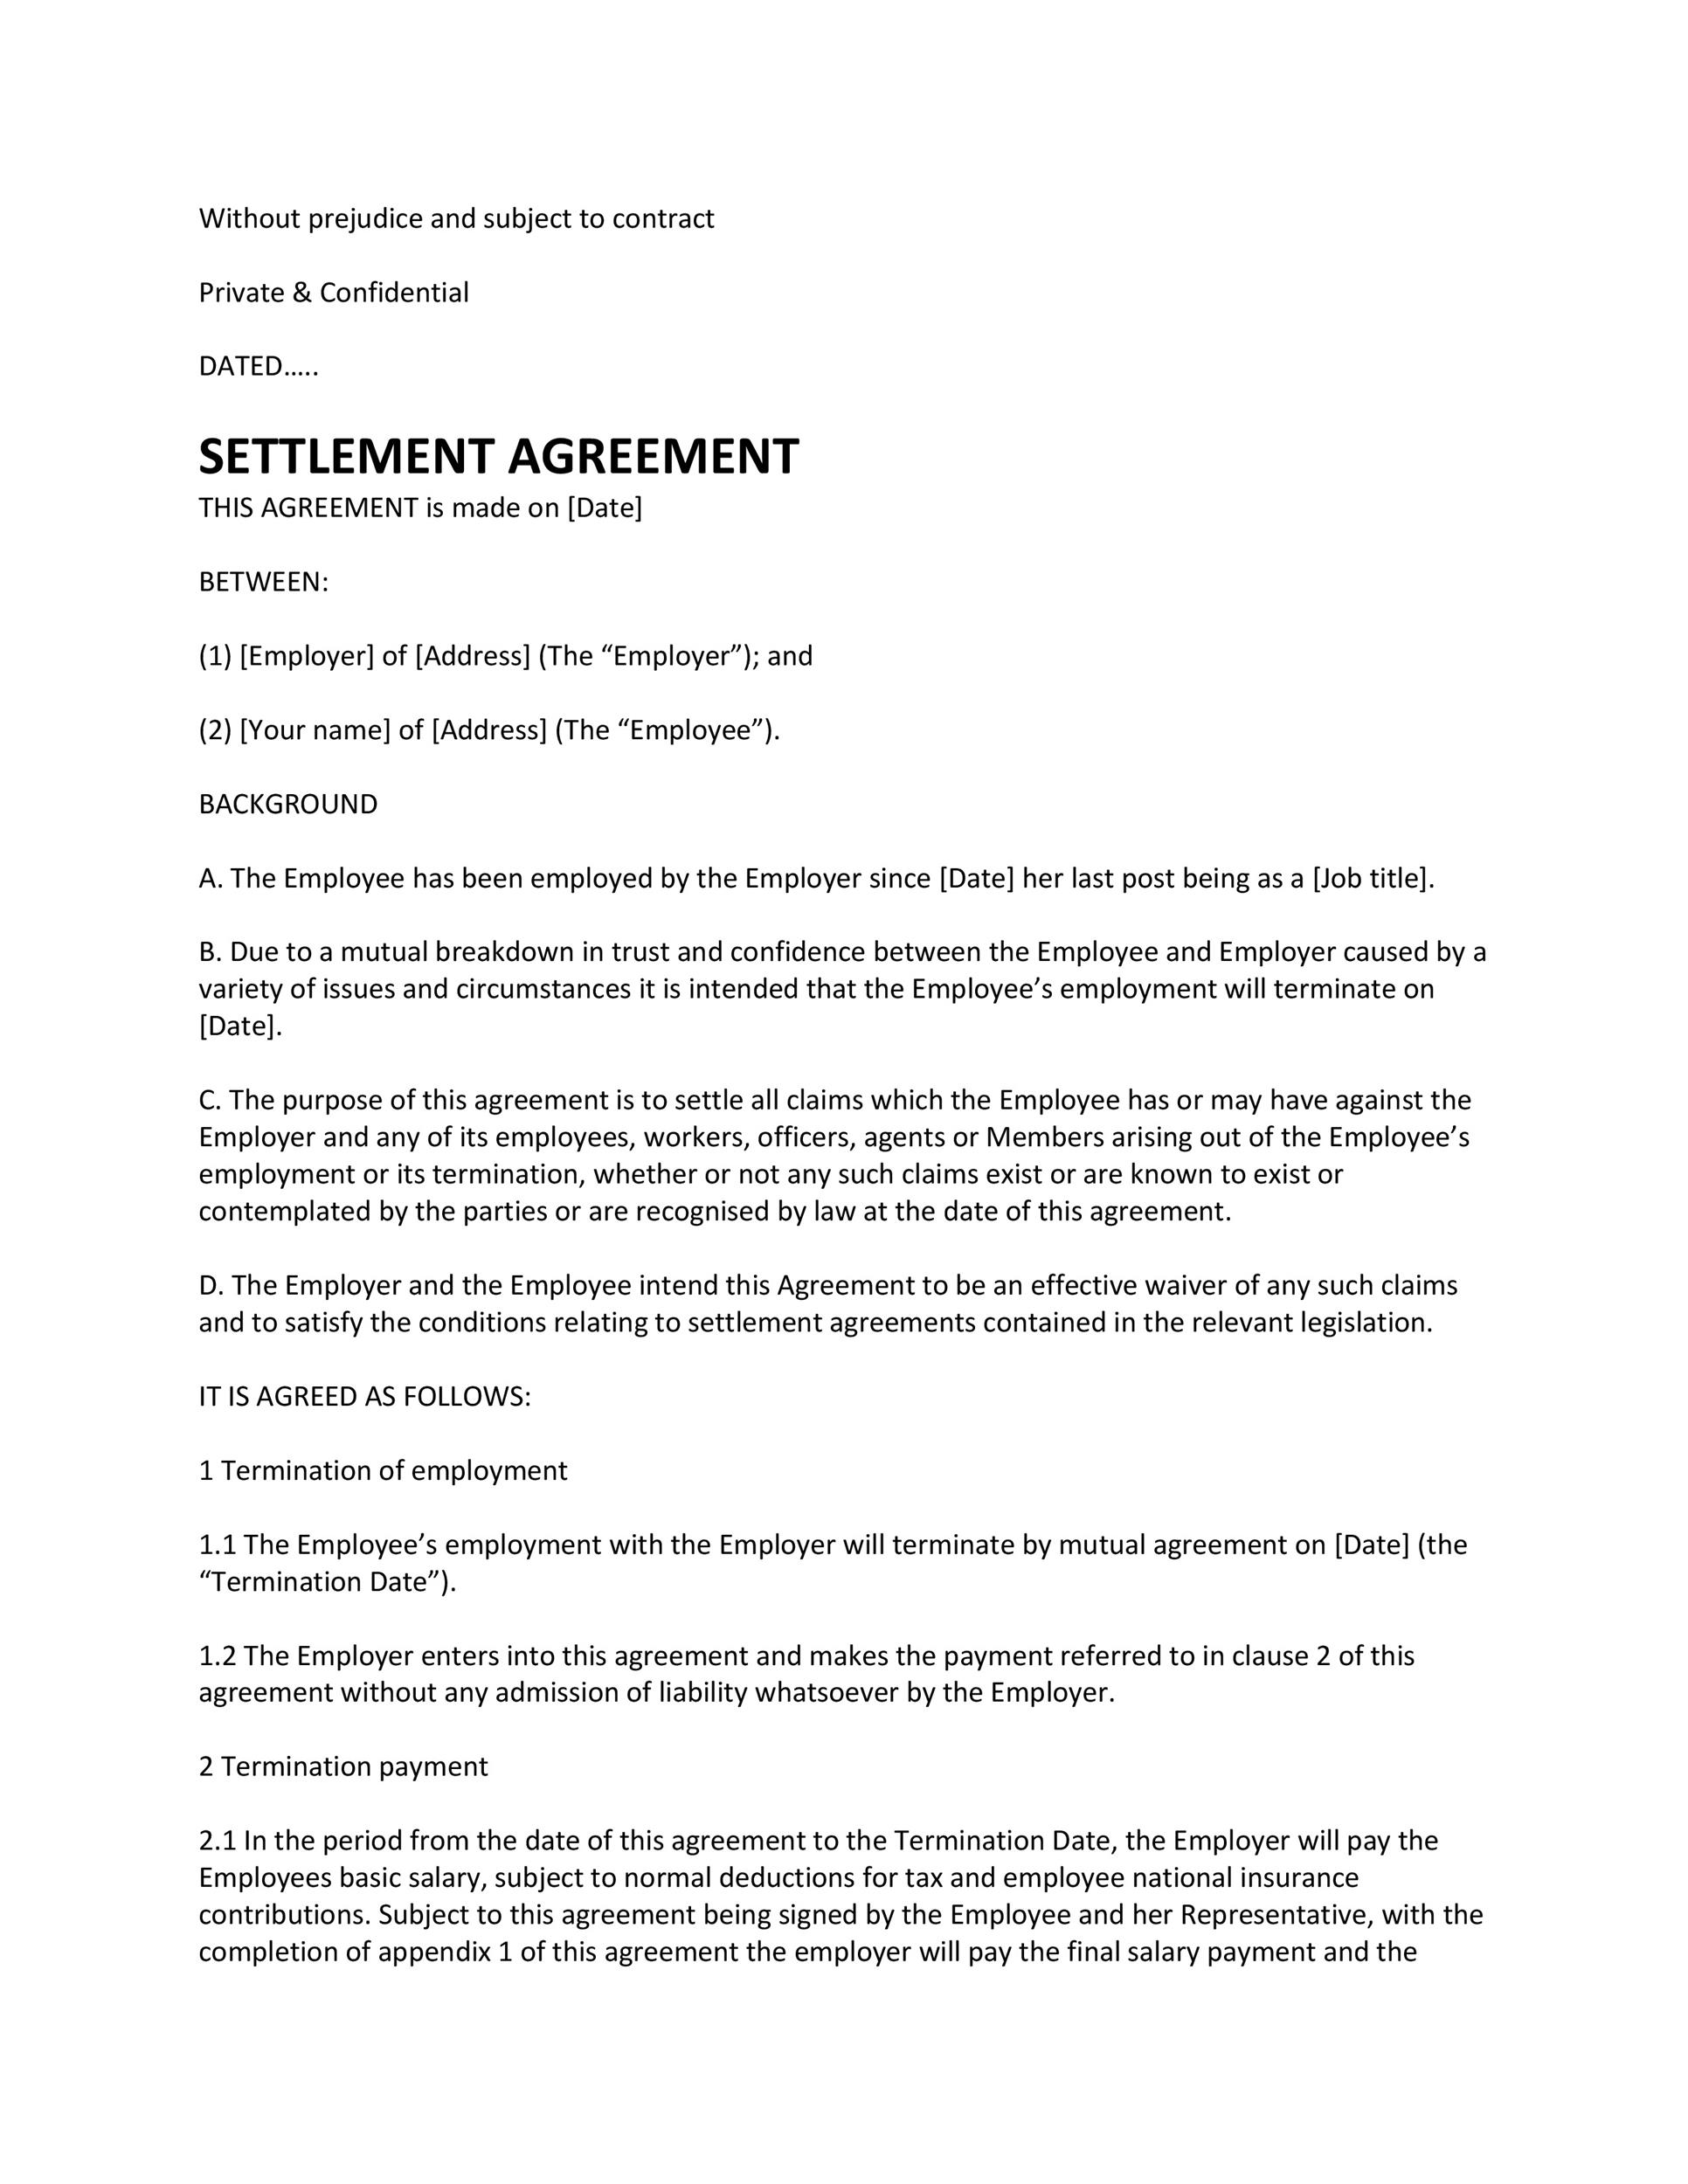 Free settlement agreement 07